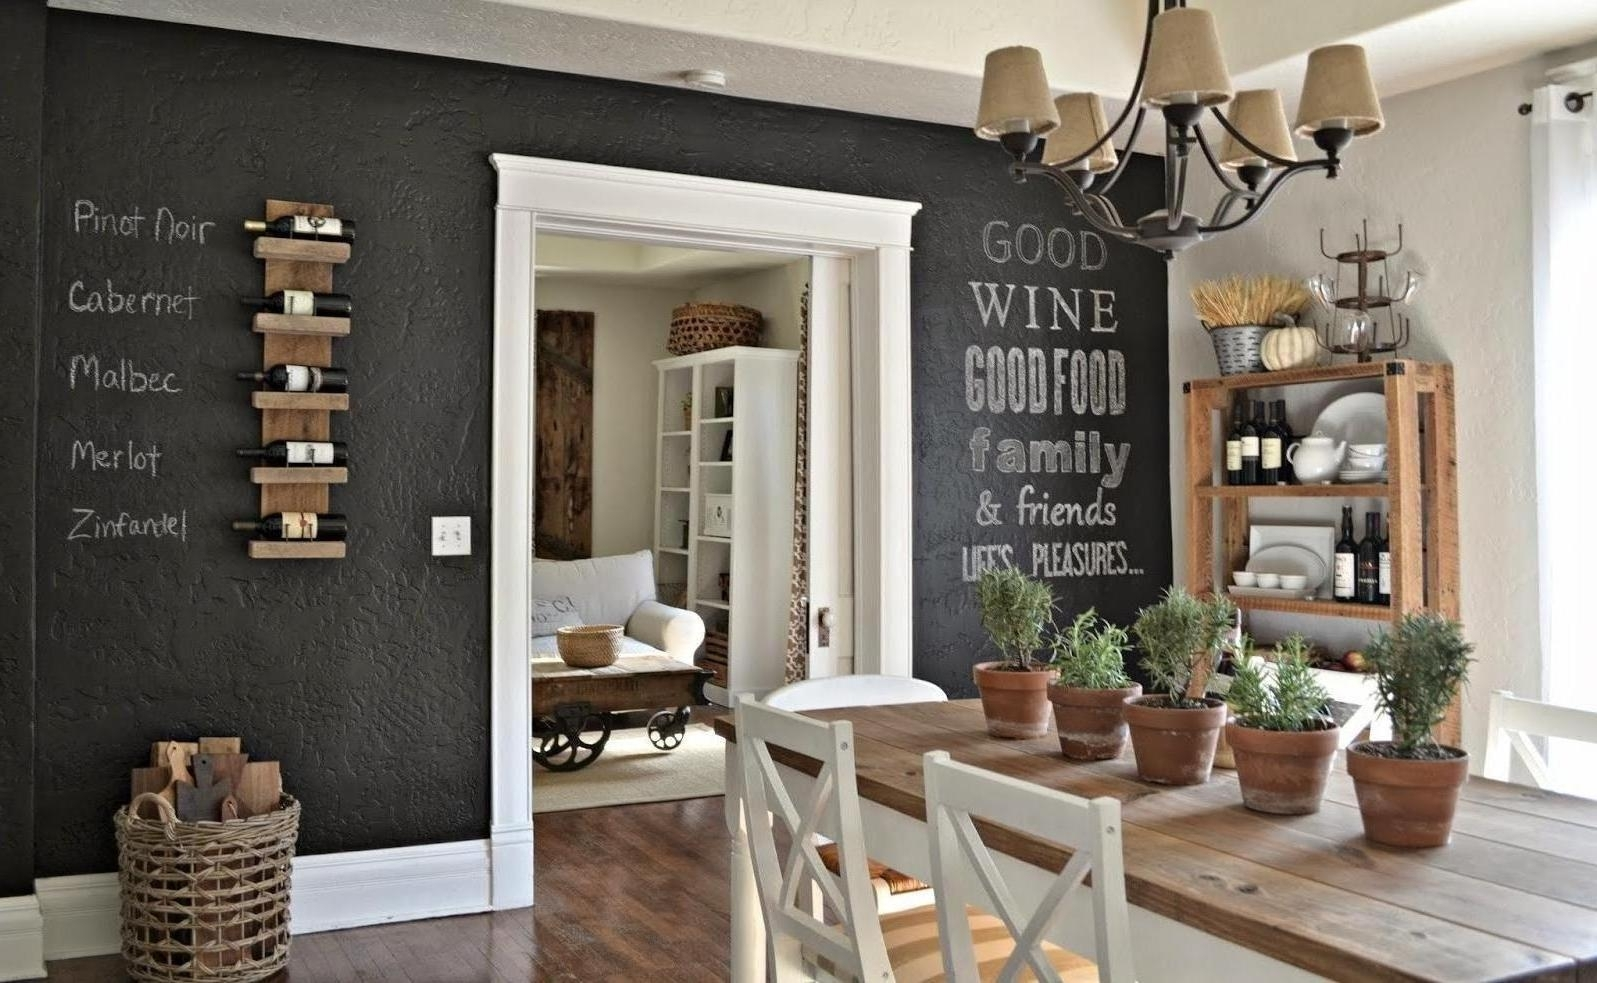 Creative Dining Room Wall Decor – Dining Room Wall Decor Concept With Most Recently Released Dining Room Wall Accents (View 6 of 15)